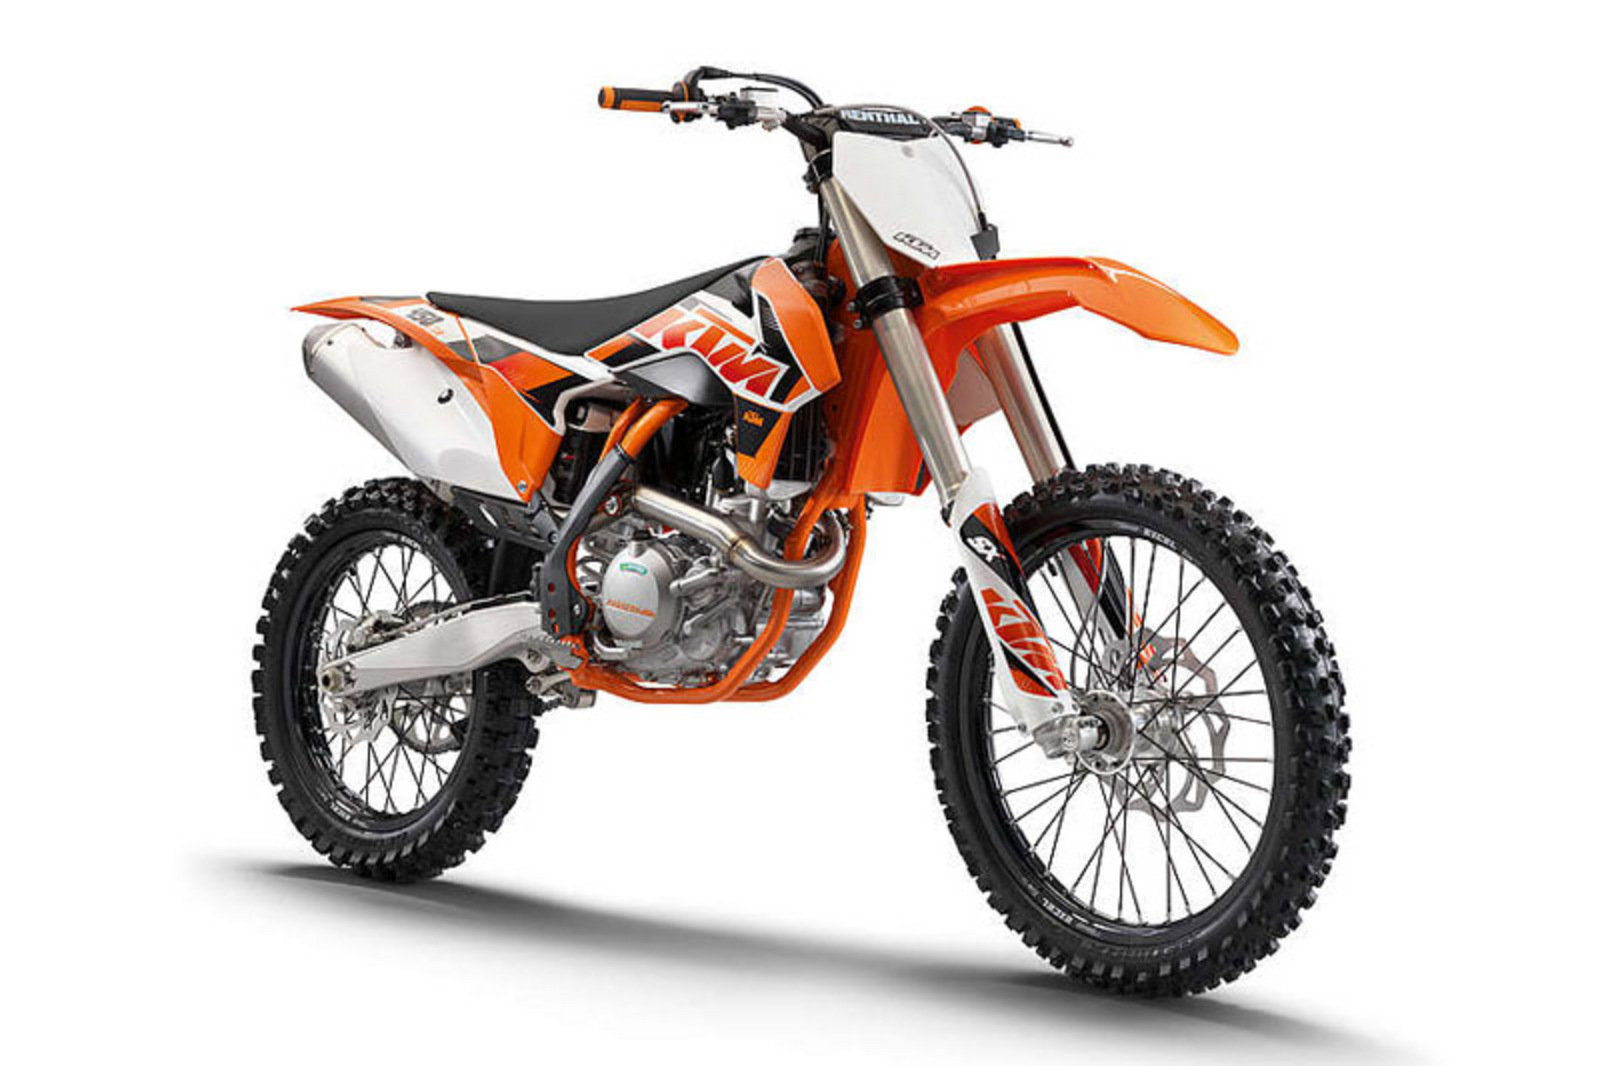 2015 ktm 450 sx f review top speed. Black Bedroom Furniture Sets. Home Design Ideas